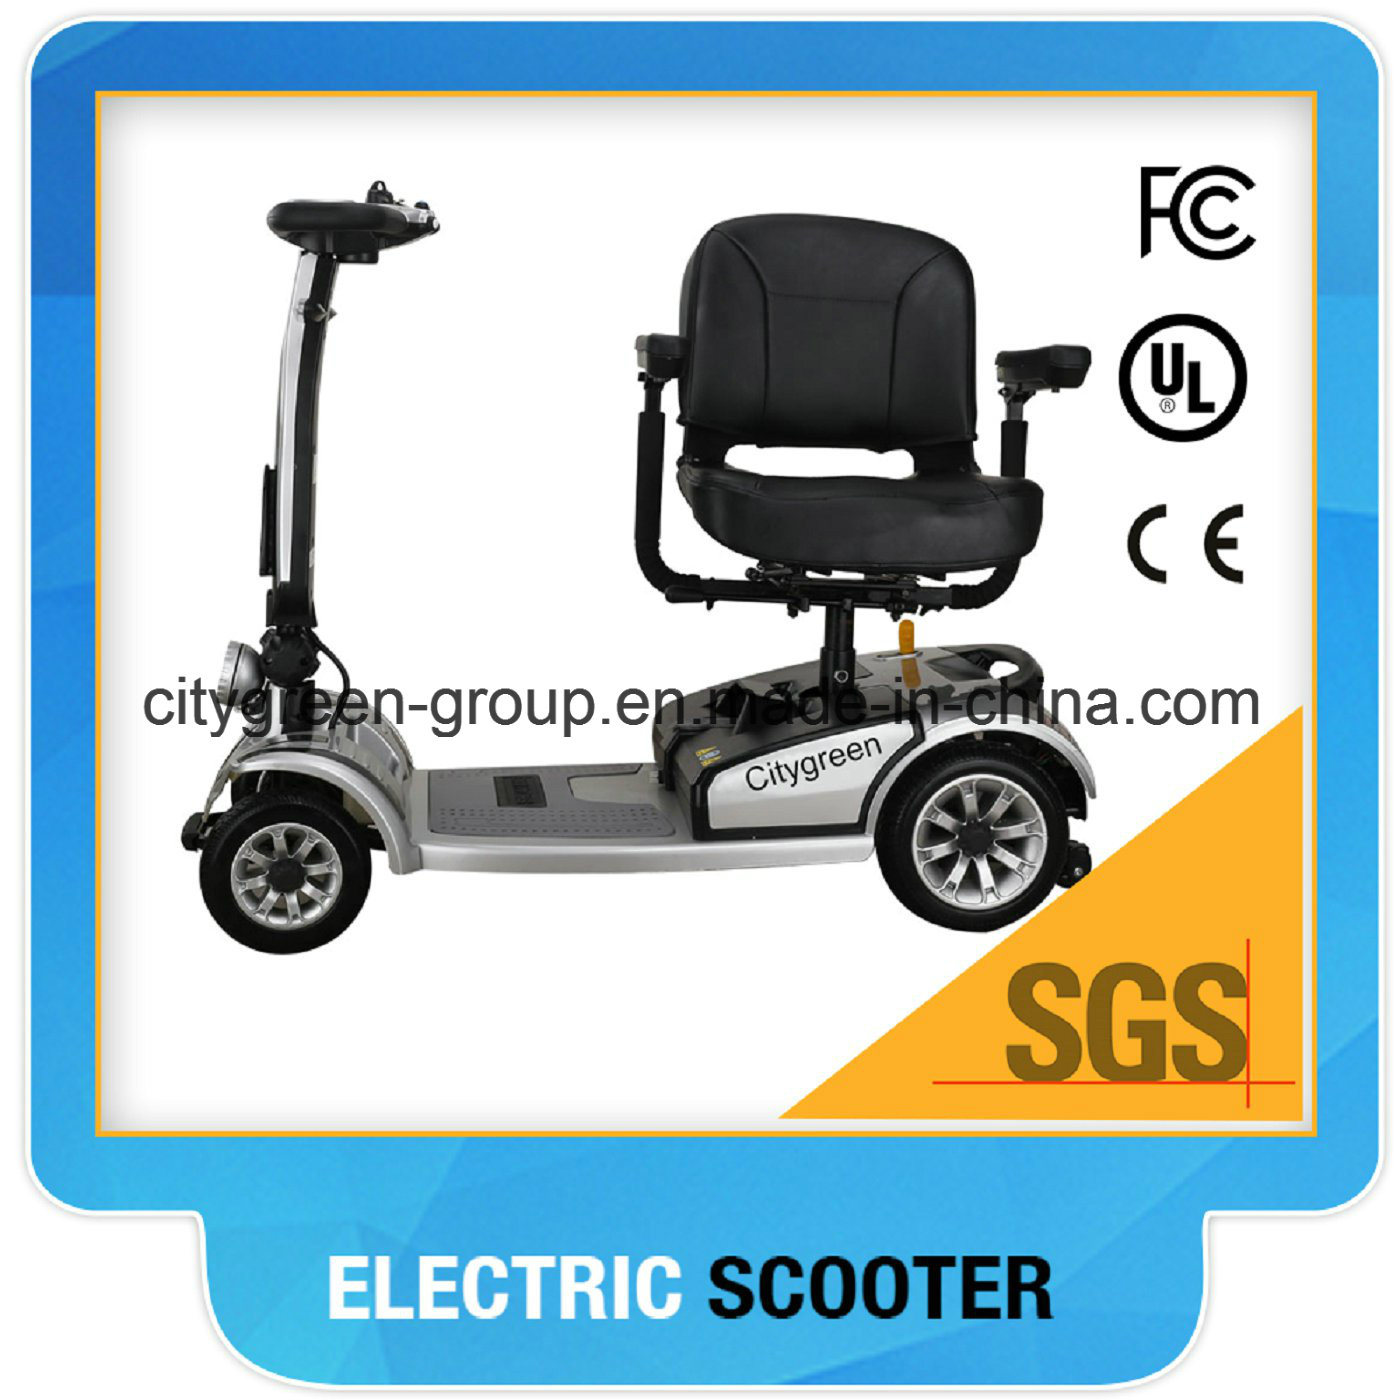 Elder Pople Scooter